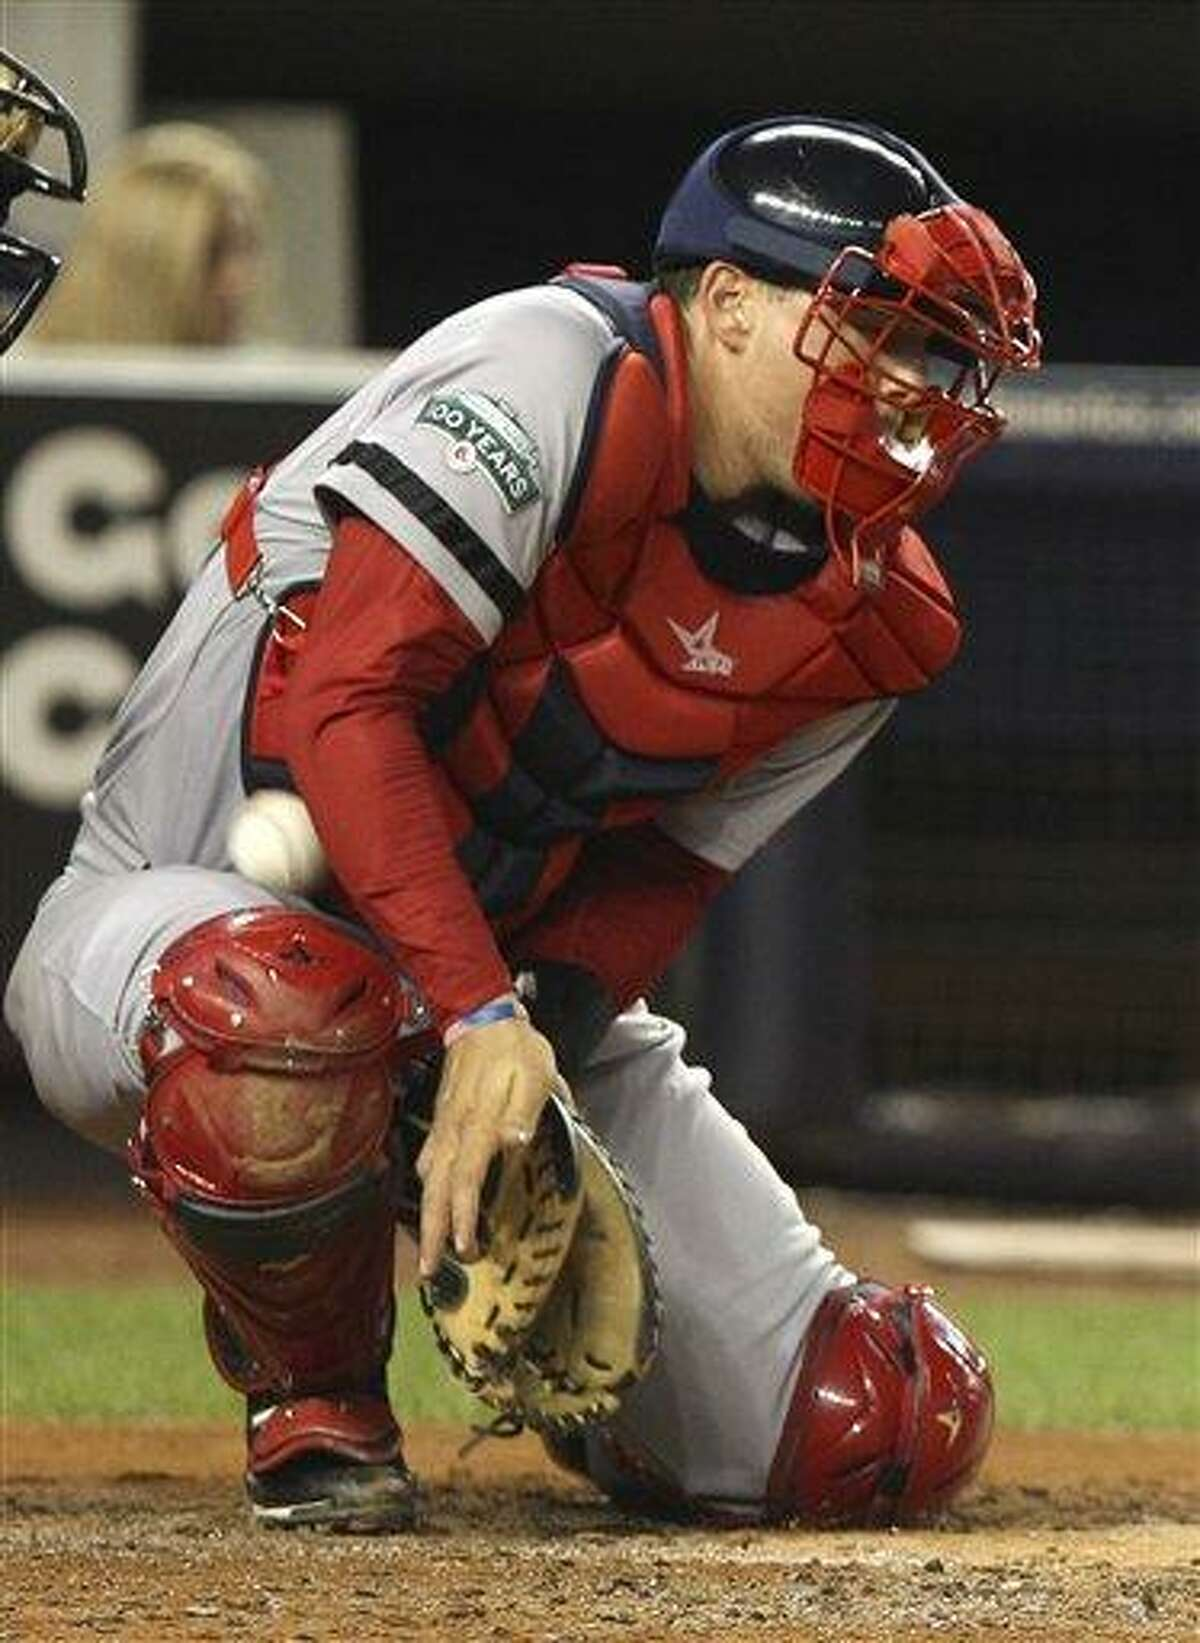 Boston Red Sox's catcher Ryan Lavarnway can't stop a wild pitch thrown by pitcher Josh Beckett, allowing New York Yankees' Derek Jeter to score during the third inning of the baseball game Sunday, Aug. 19, 2012 at Yankee Stadium in New York. (AP Photo/Seth Wenig)